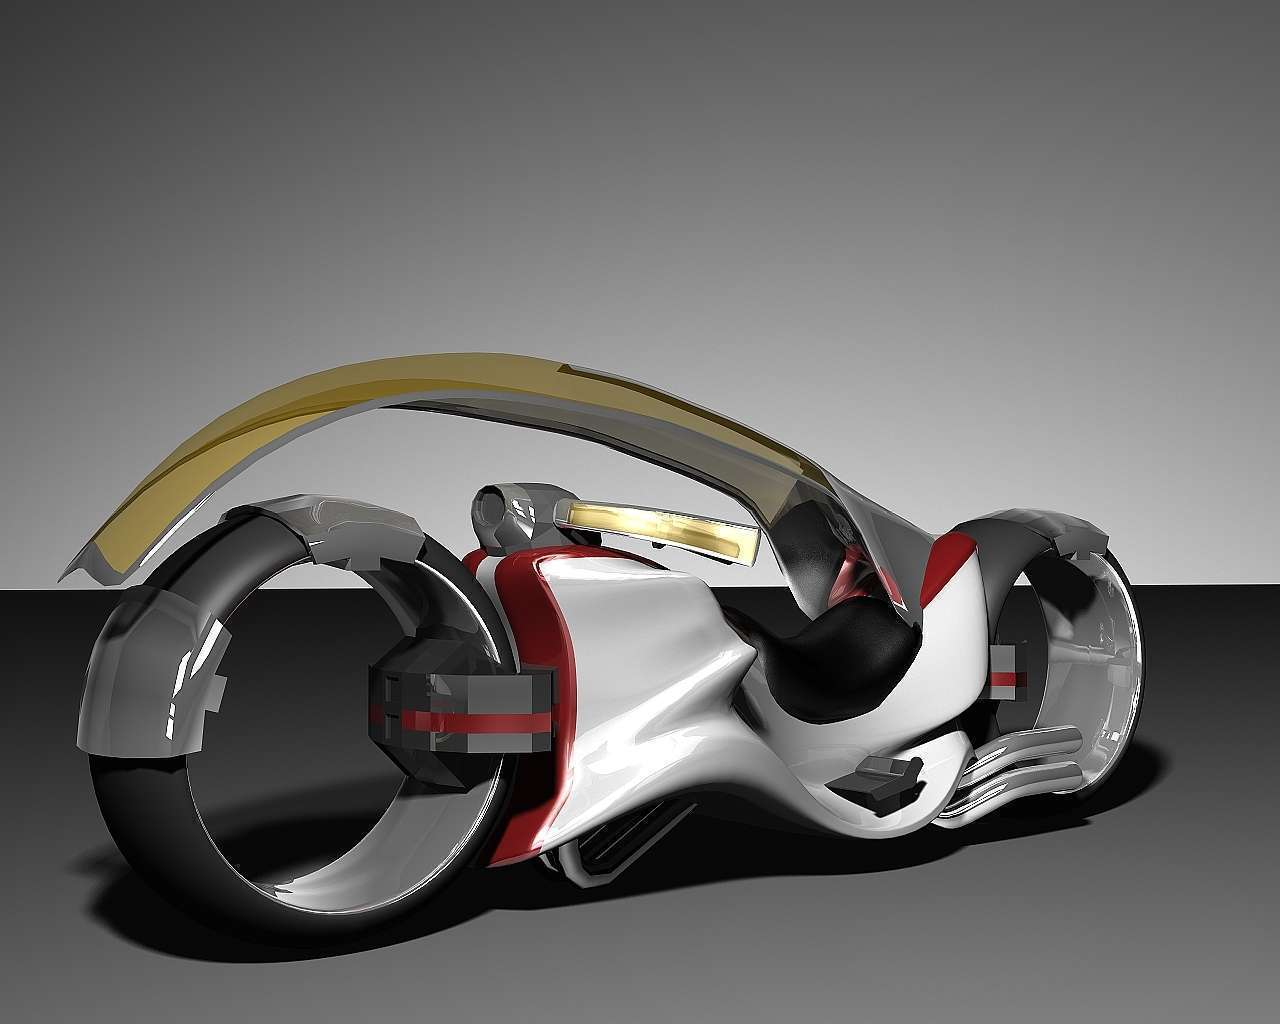 View Of Concept Bike Wallpaper : Hd Car Wallpapers